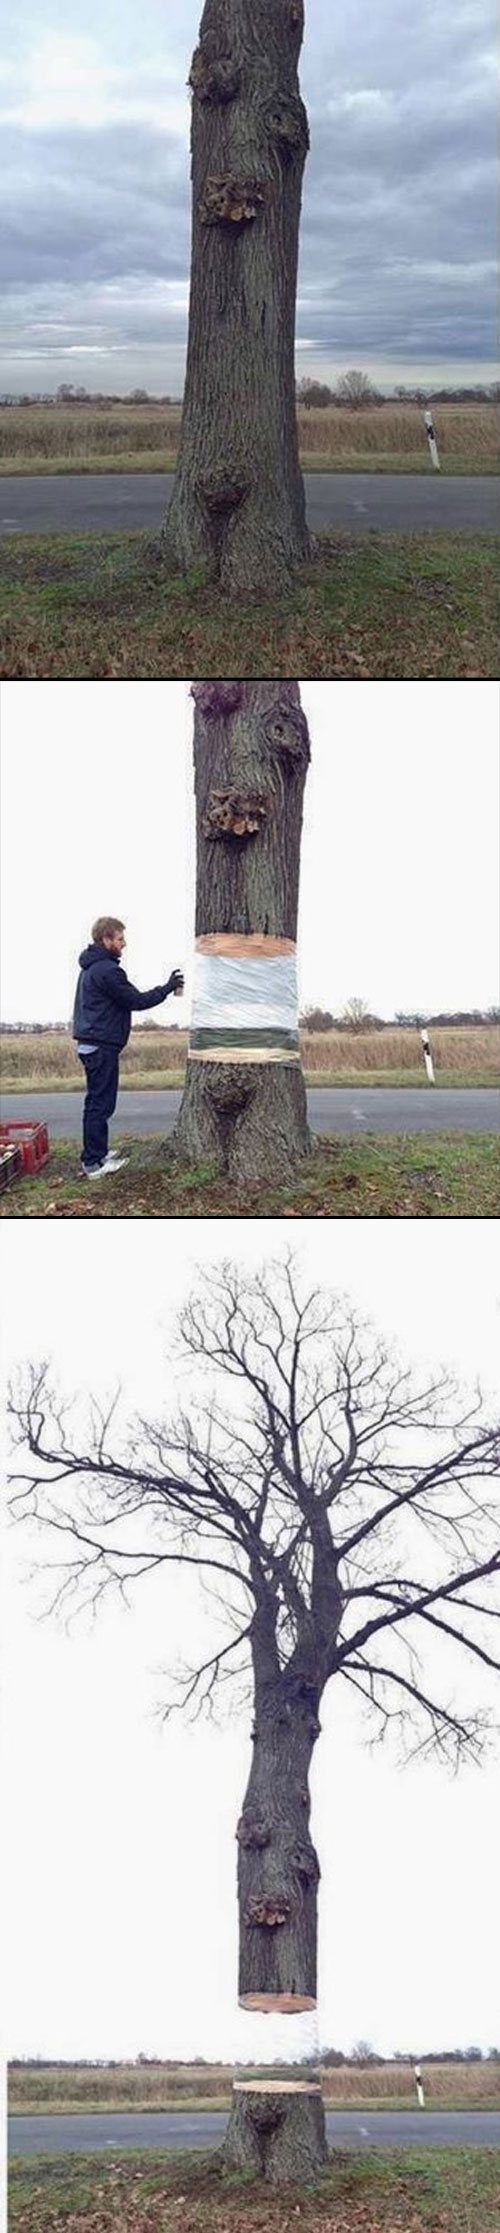 [German artists Daniel Siering and Mario Shu painted a section of a tree to make it look like it's missing